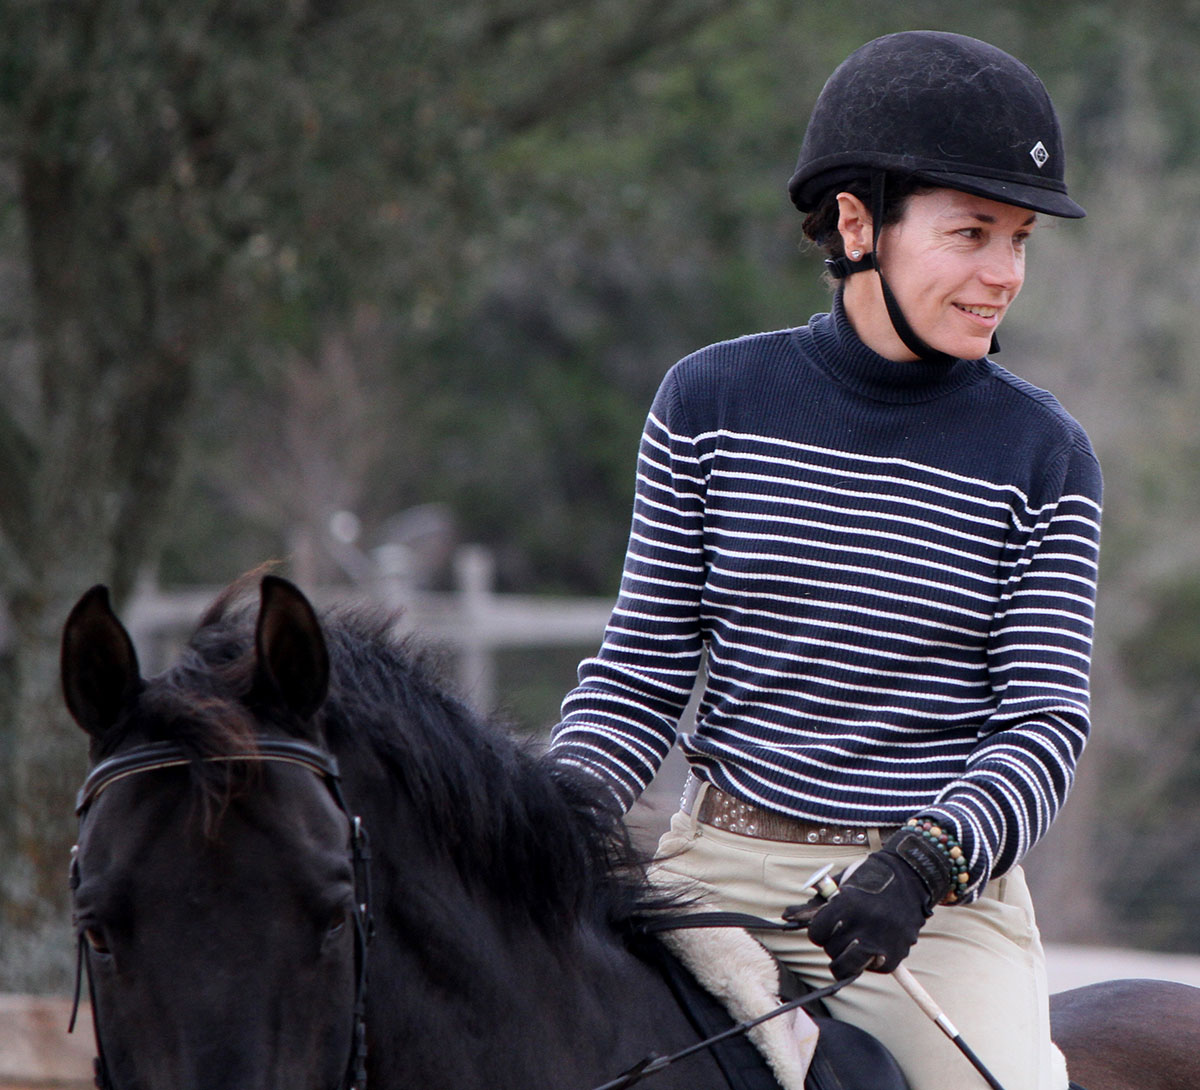 Suzanne Warmack riding horse